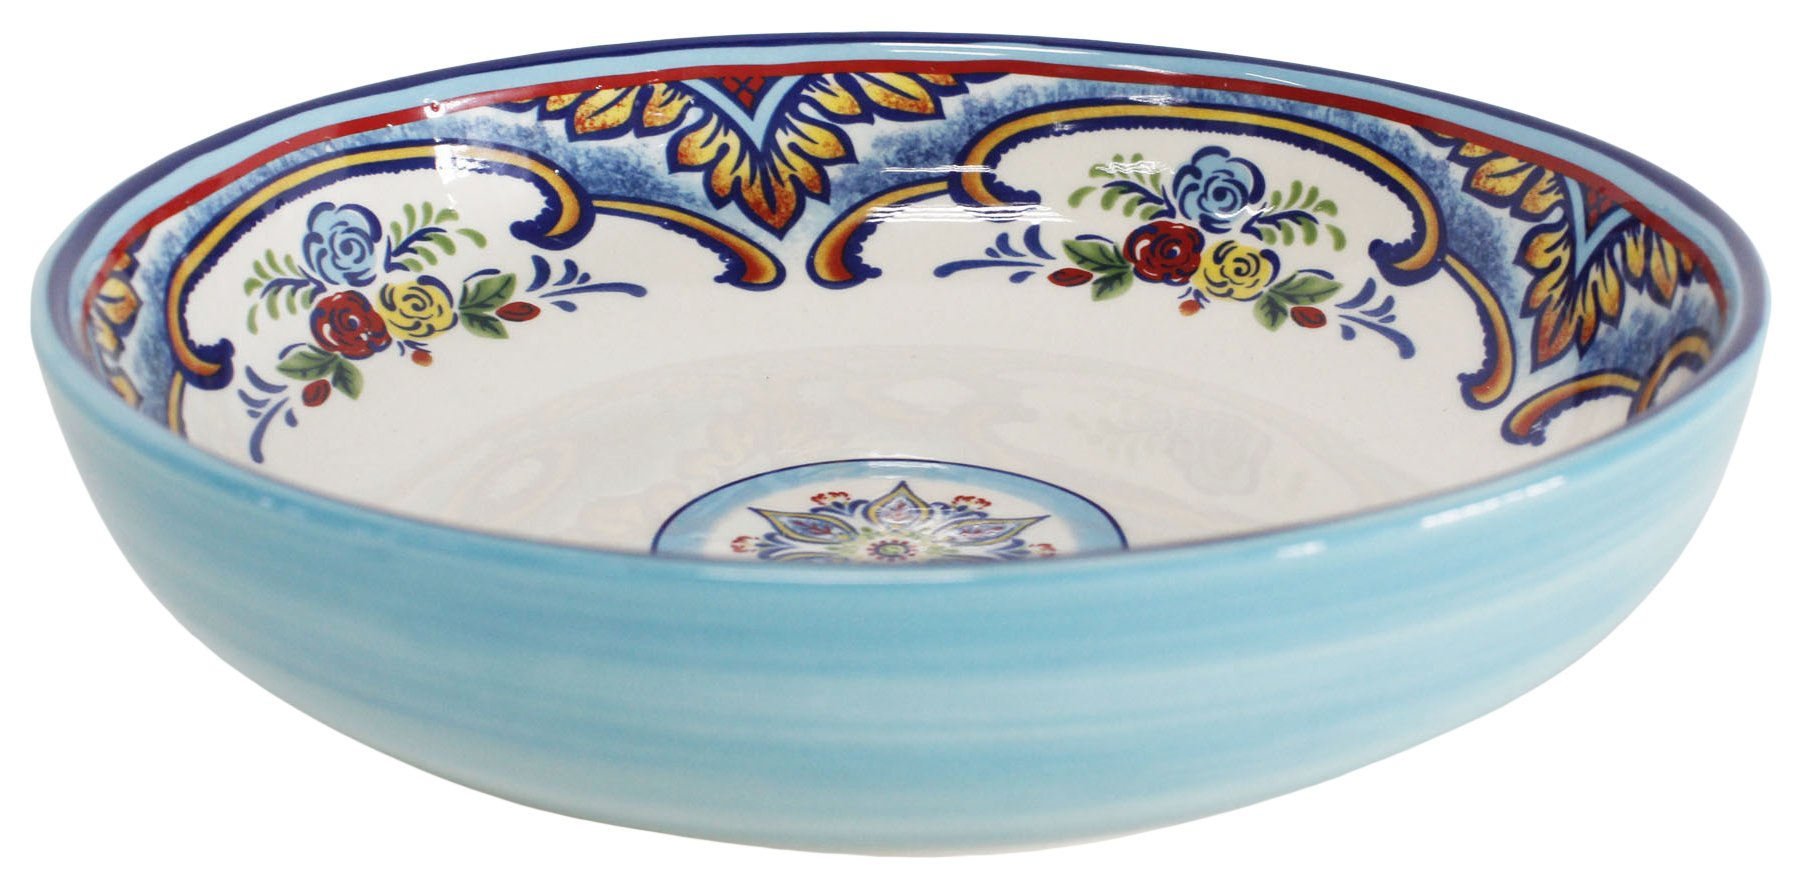 "Euro Ceramica Zanzibar Collection Vibrant 8.4"" Ceramic Pasta/Dining Bowls, Set of 4, Spanish Floral Design, Multicolor"